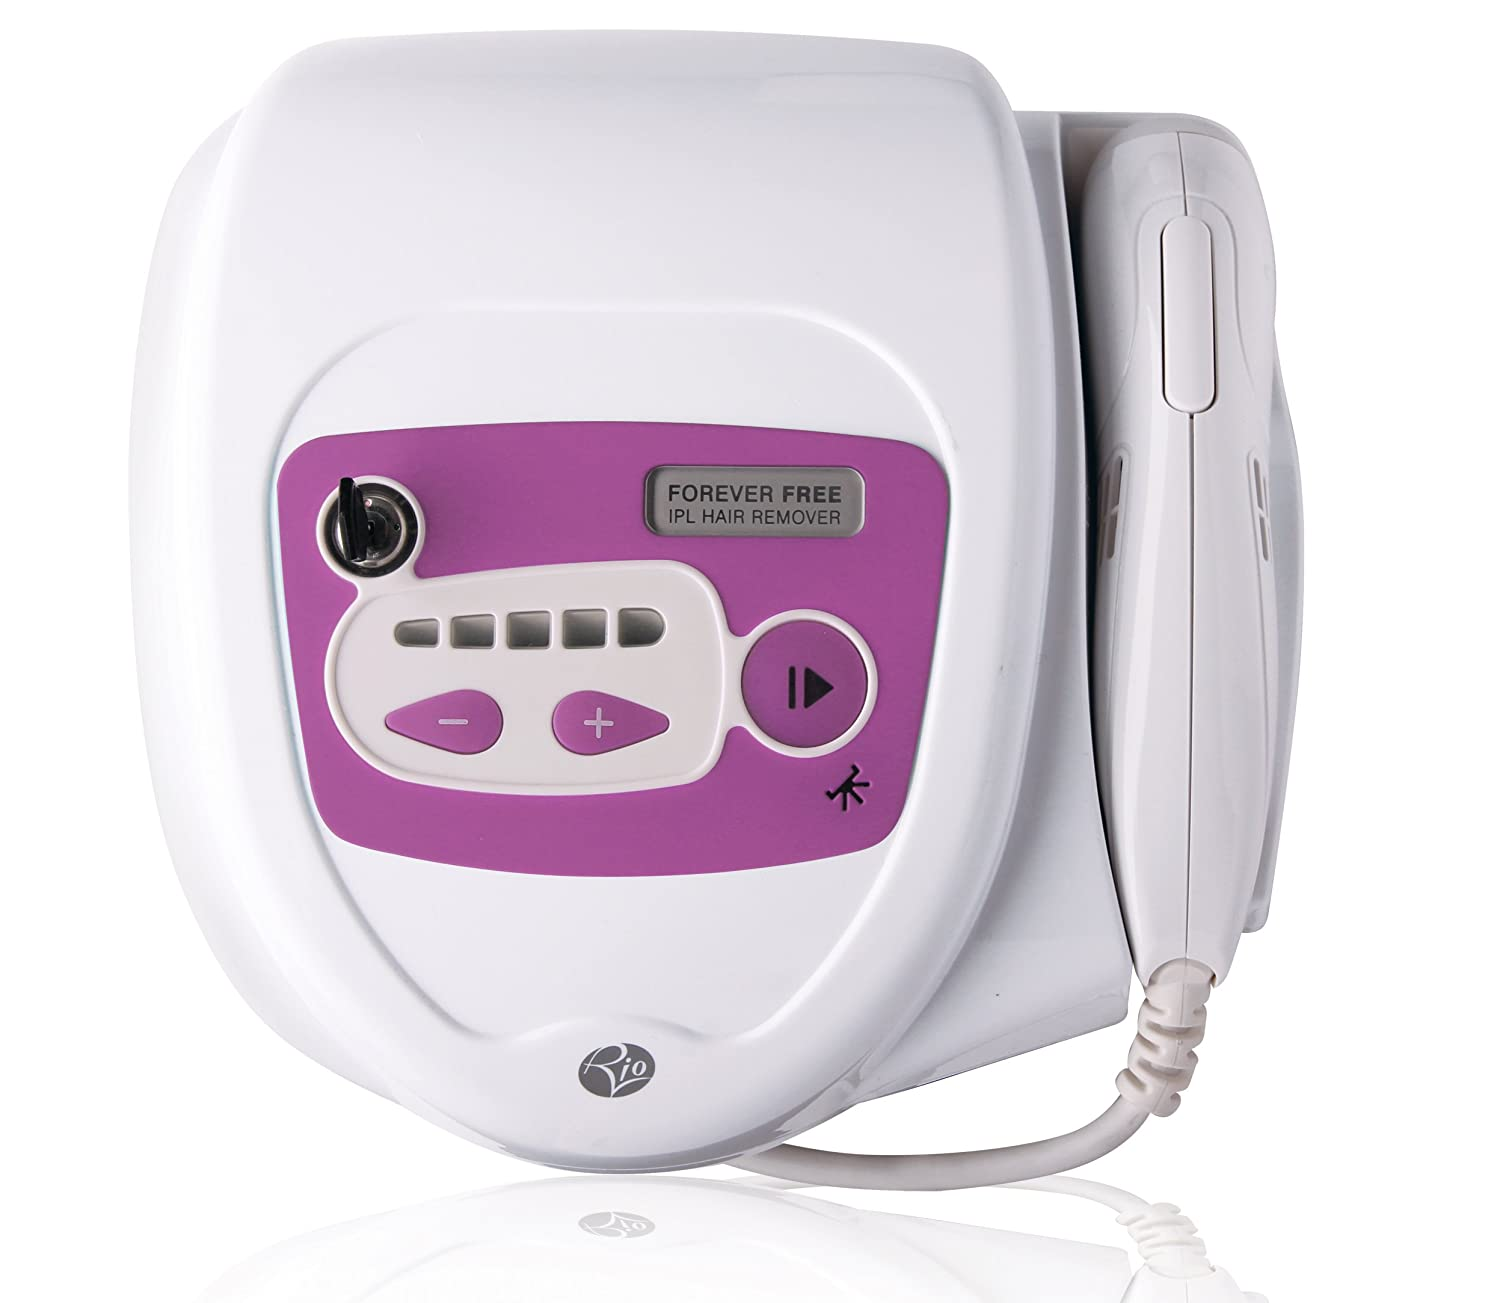 Rio Forever Free IPL Intense Pulsed Light Hair Removal System The Dezac Group Ltd 5019487083579 IPHR3